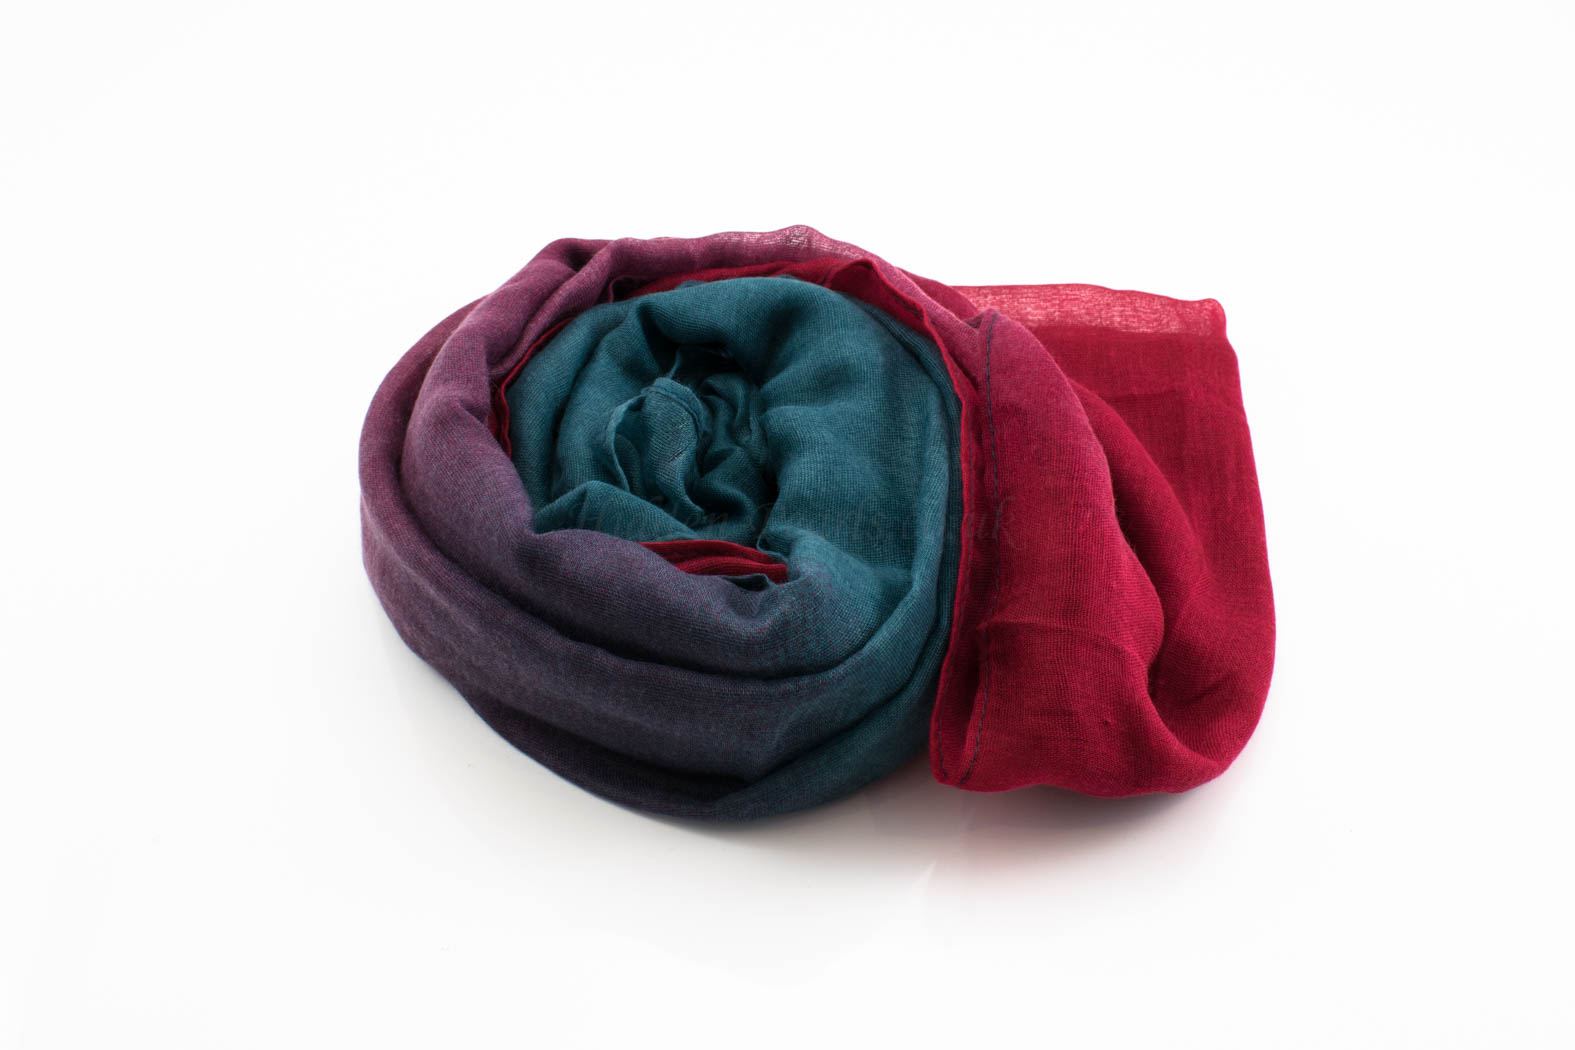 Ombre Hijab Red & Teal 2- Hidden Pearls